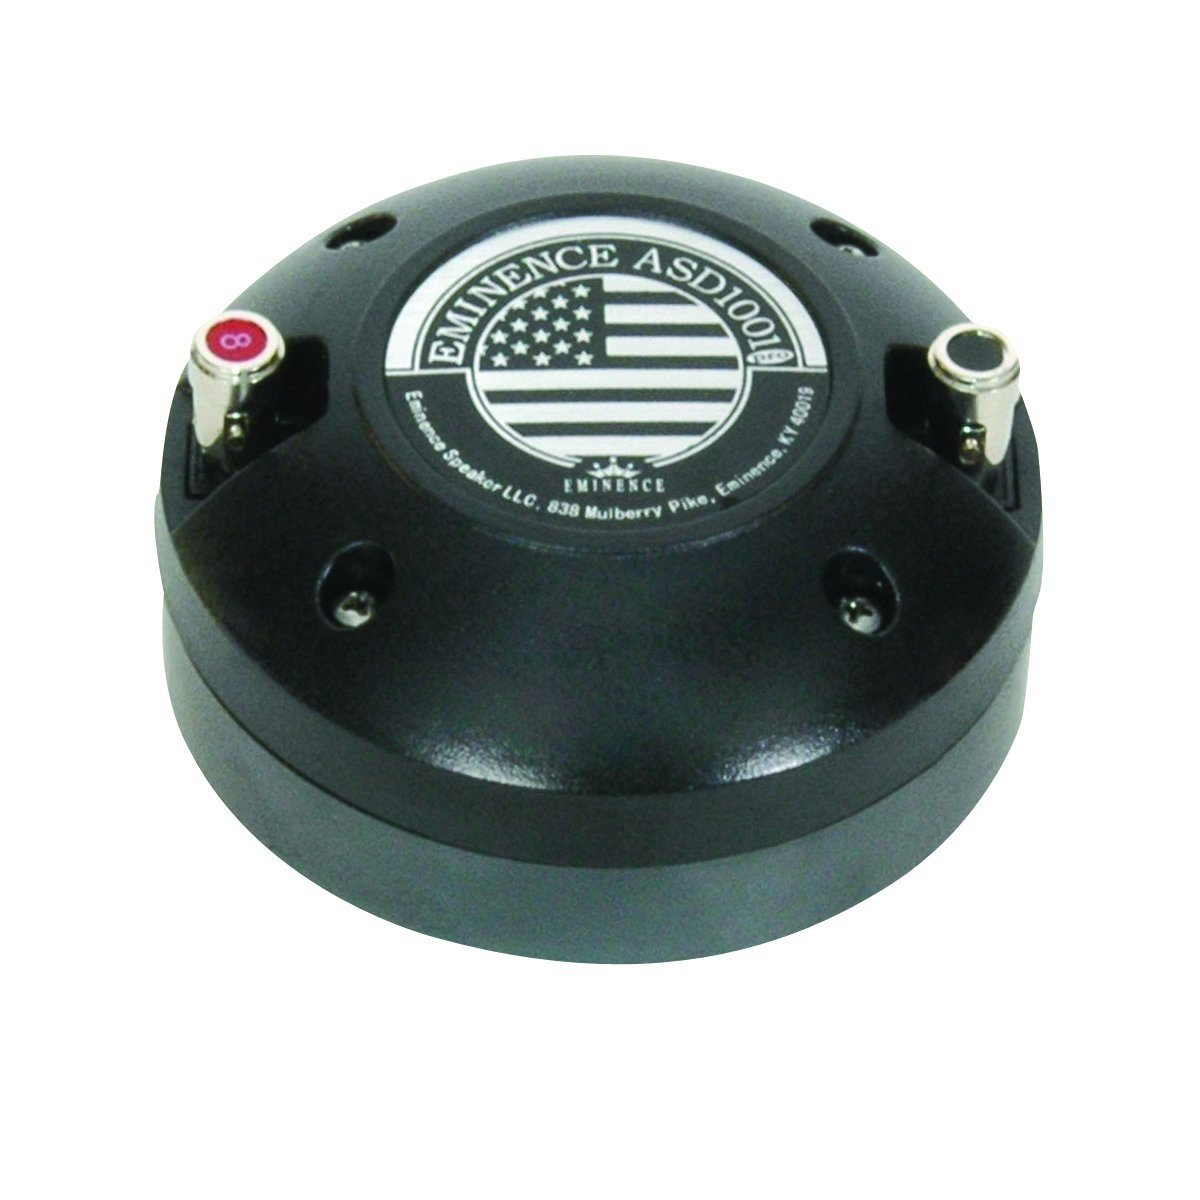 Eminence ASD:1001 High Frequency Driver, 50 Watts at 8 Ohms by Eminence